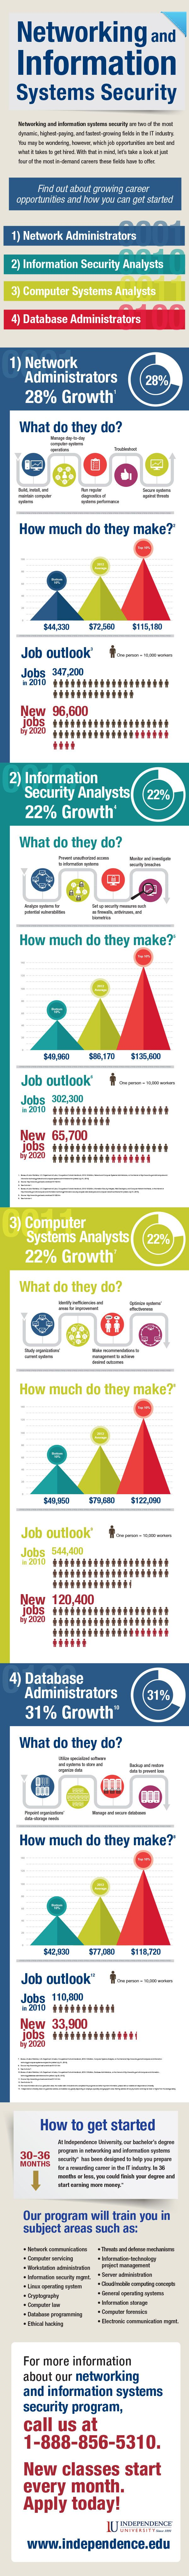 Technology is evolving at a fast pace. Networking and Information Systems Security is a field that offers the chance to work as a network administrator, information security analyst, computer systems analyst, or database administrator. Not sure what people do in those jobs? Click to read the infographic.